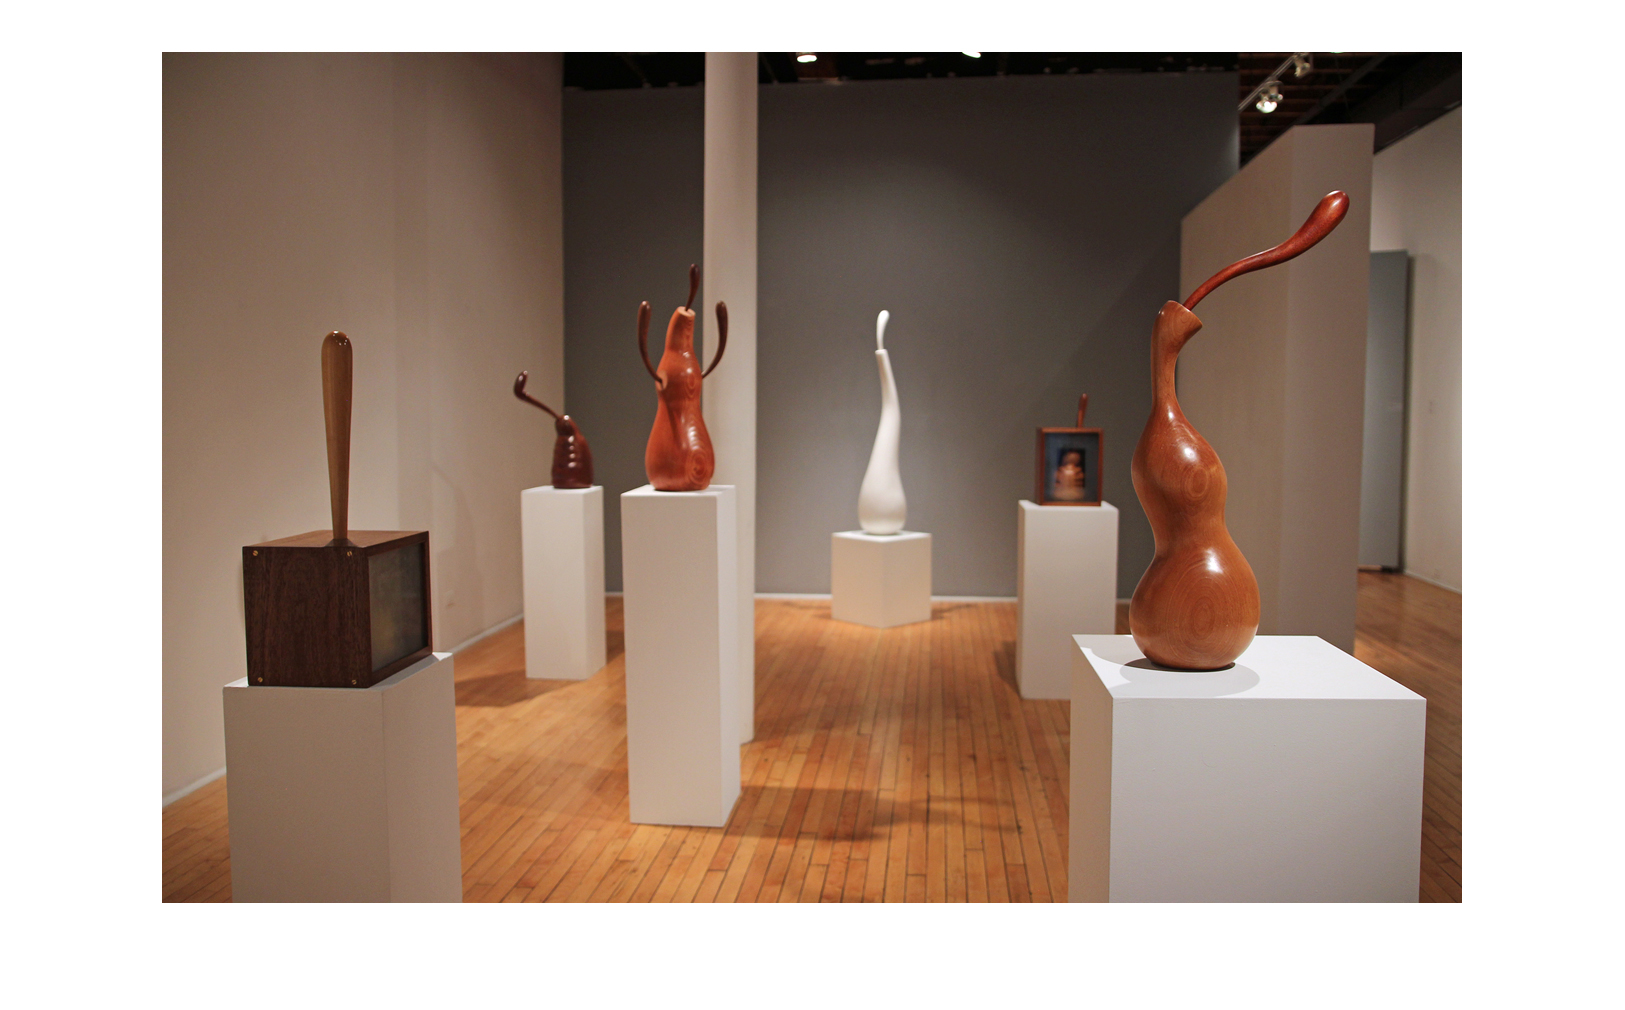 'Sculptures' exhibition, 2019 - Jean Albano Gallery